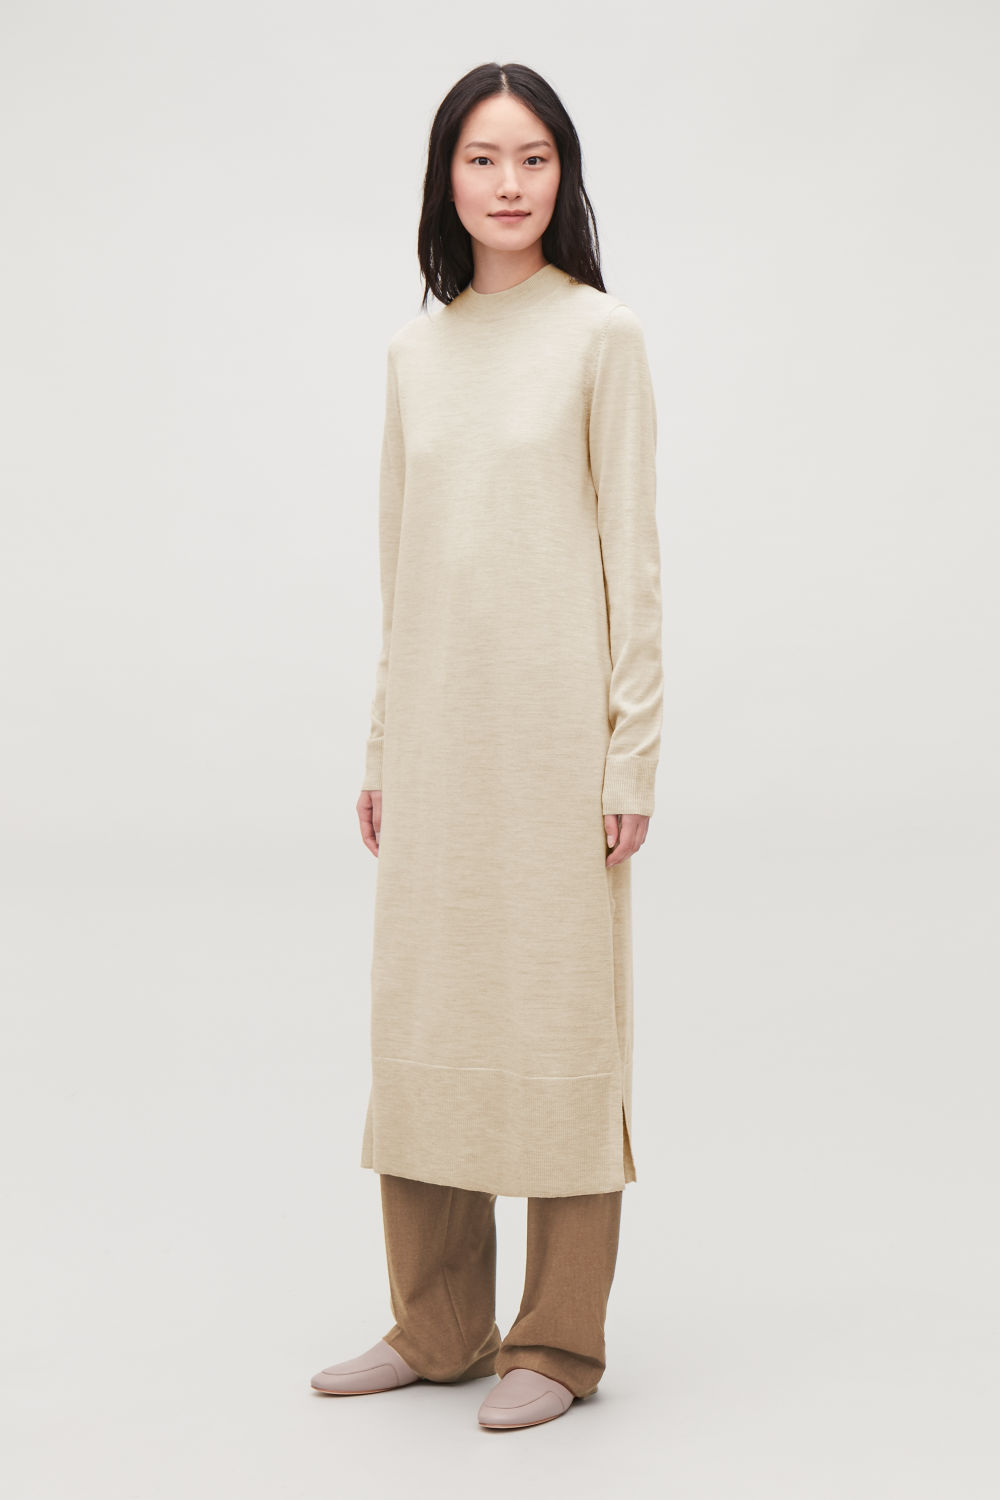 LONG WOOL-KNIT DRESS